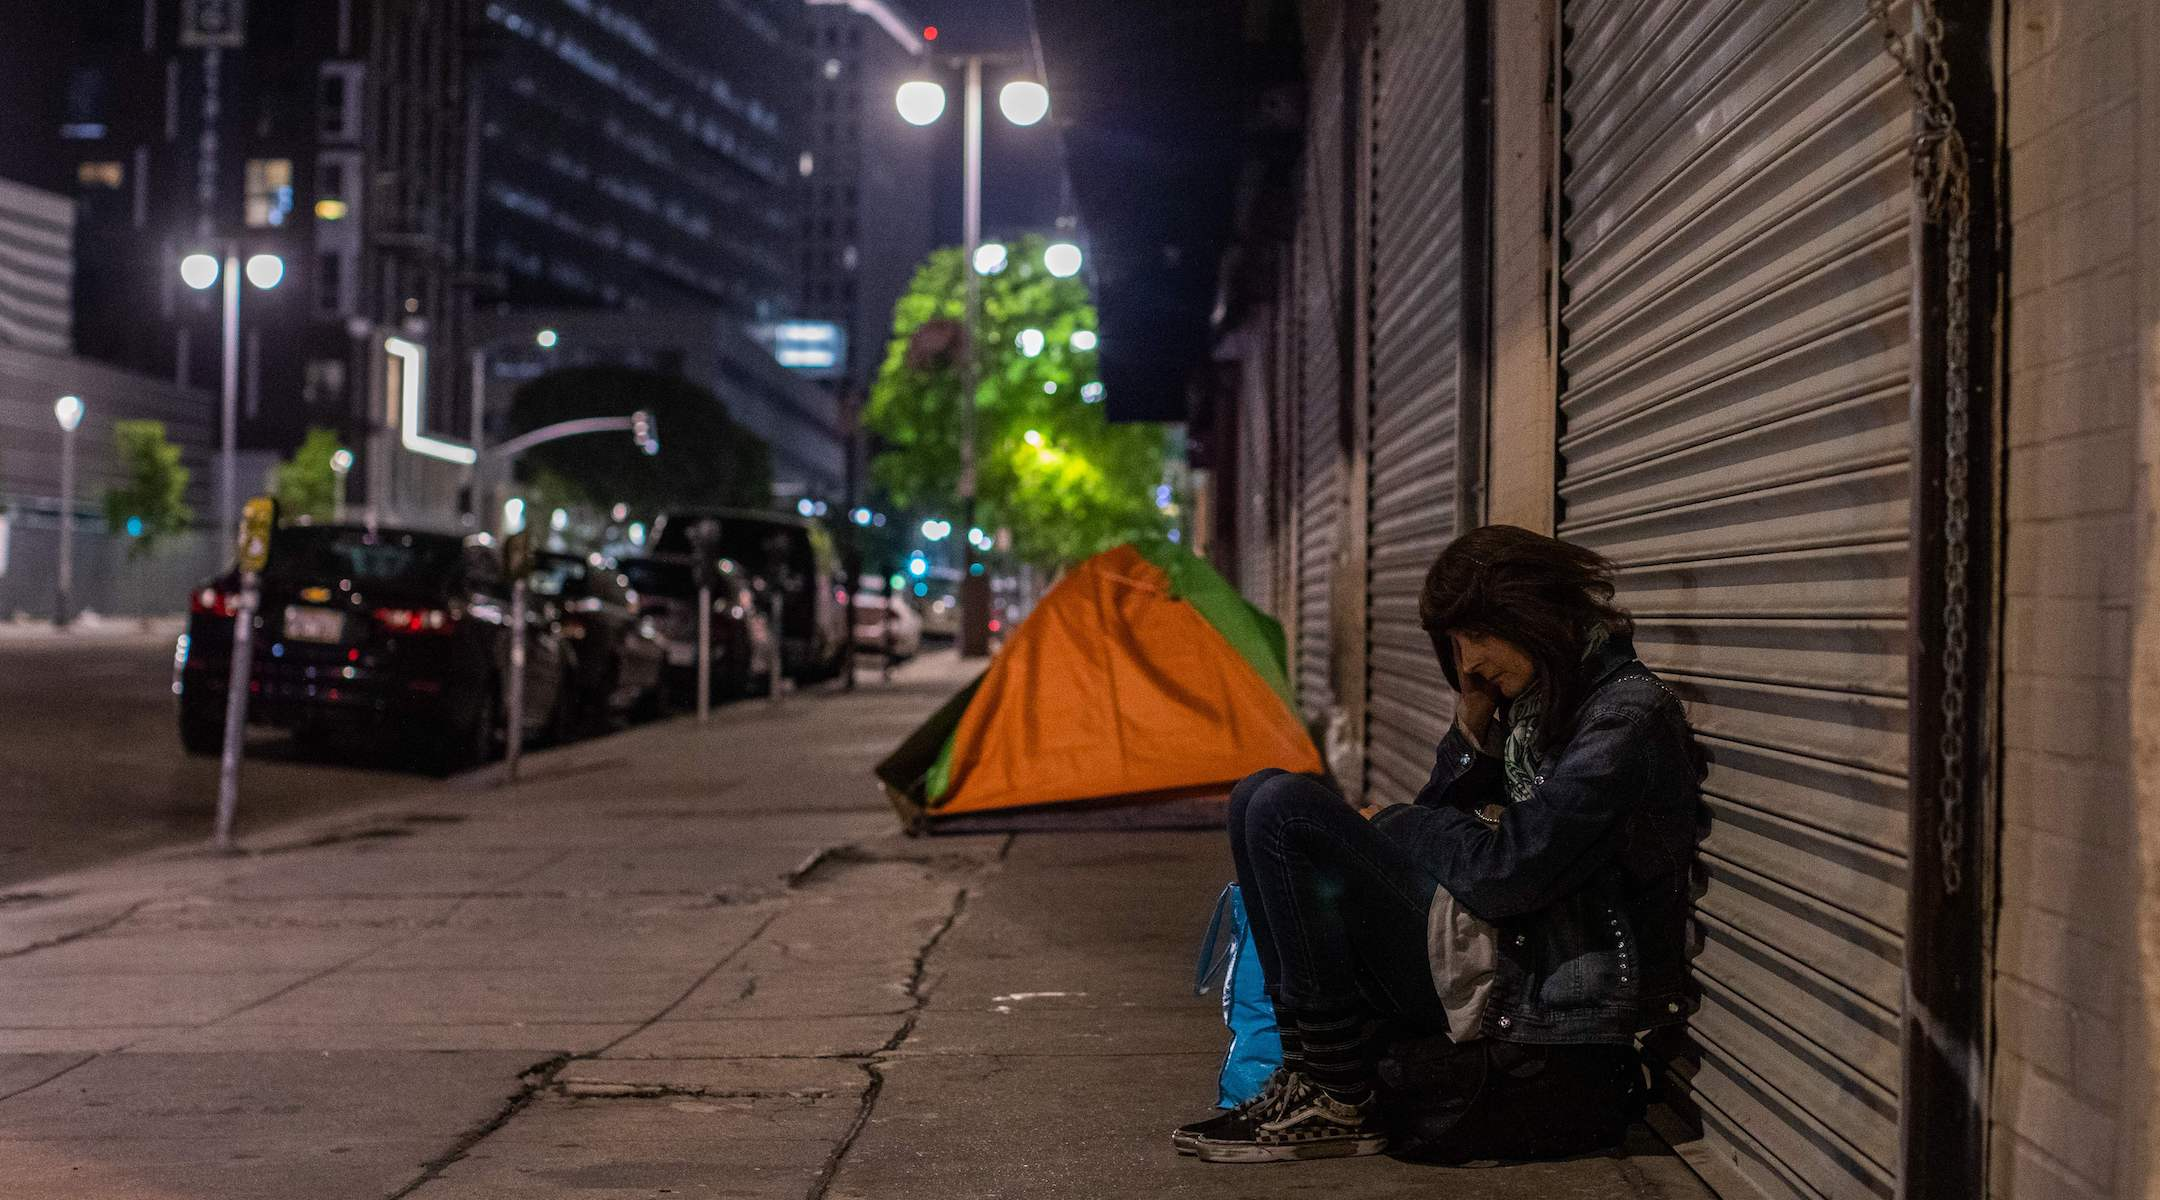 Los Angeles has a major homelessness problem. These Jewish groups are helping by opening their...